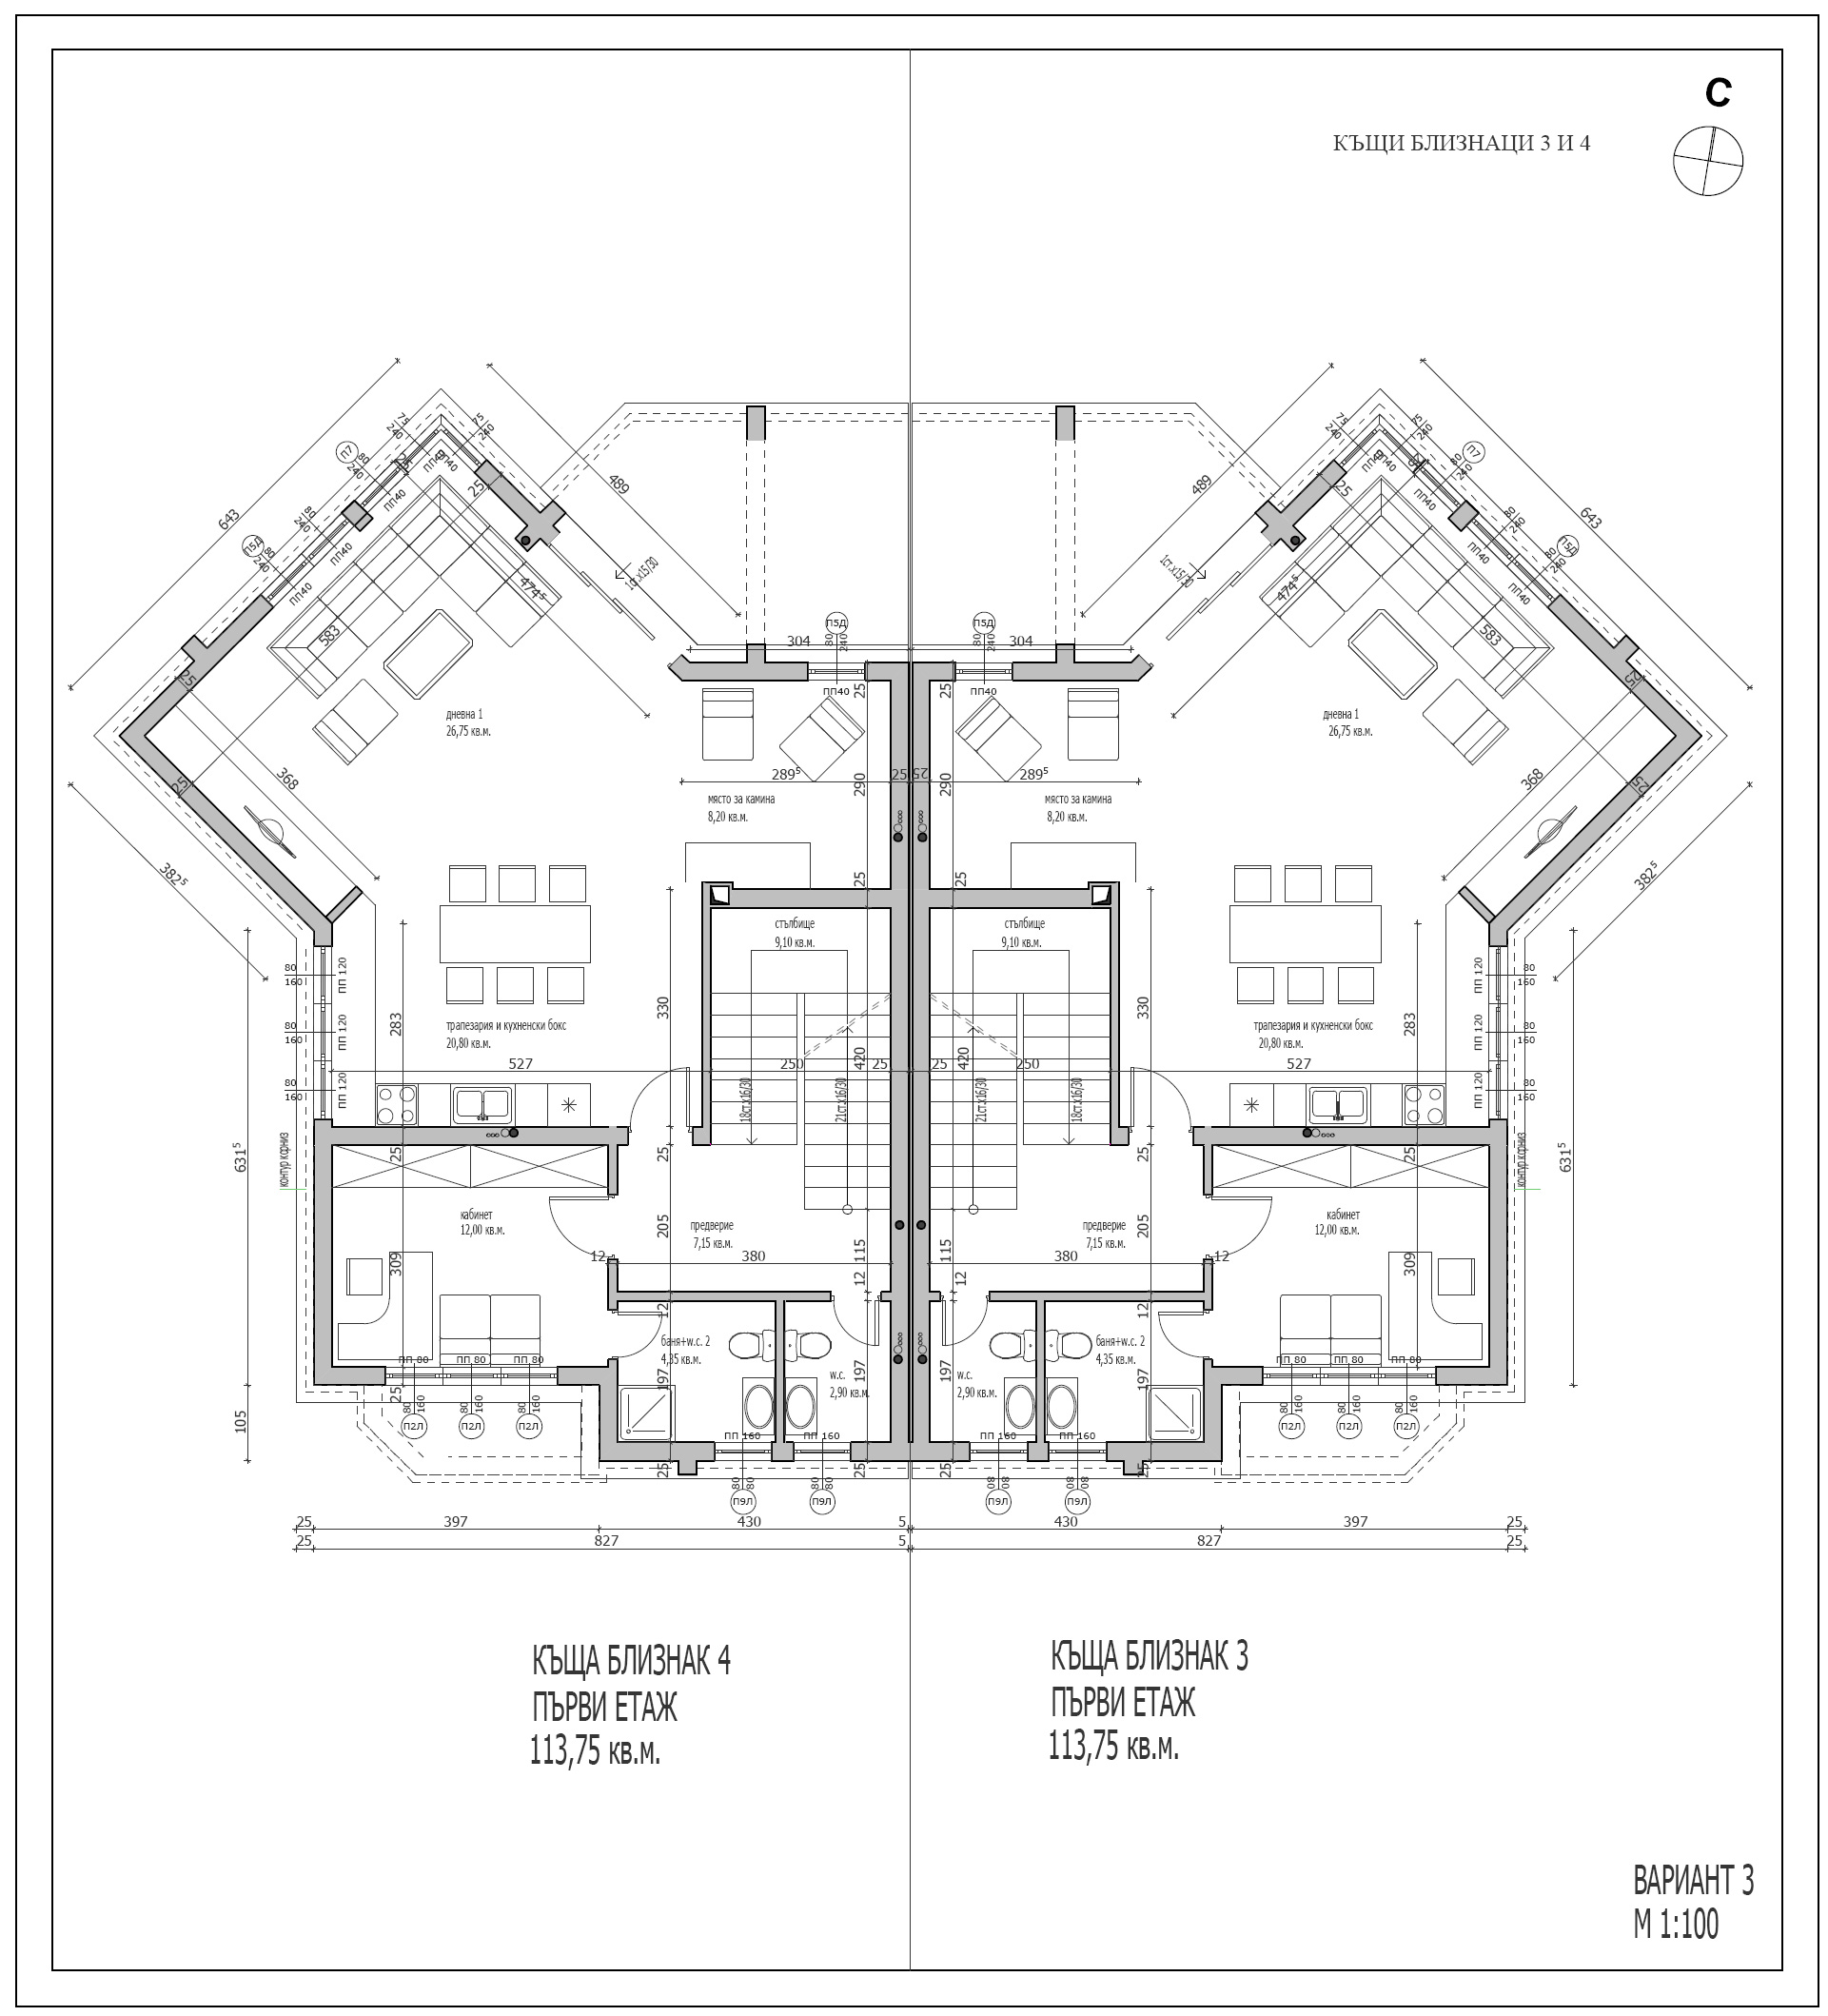 13323 on floor plan for 3 bedroom 2 bath house